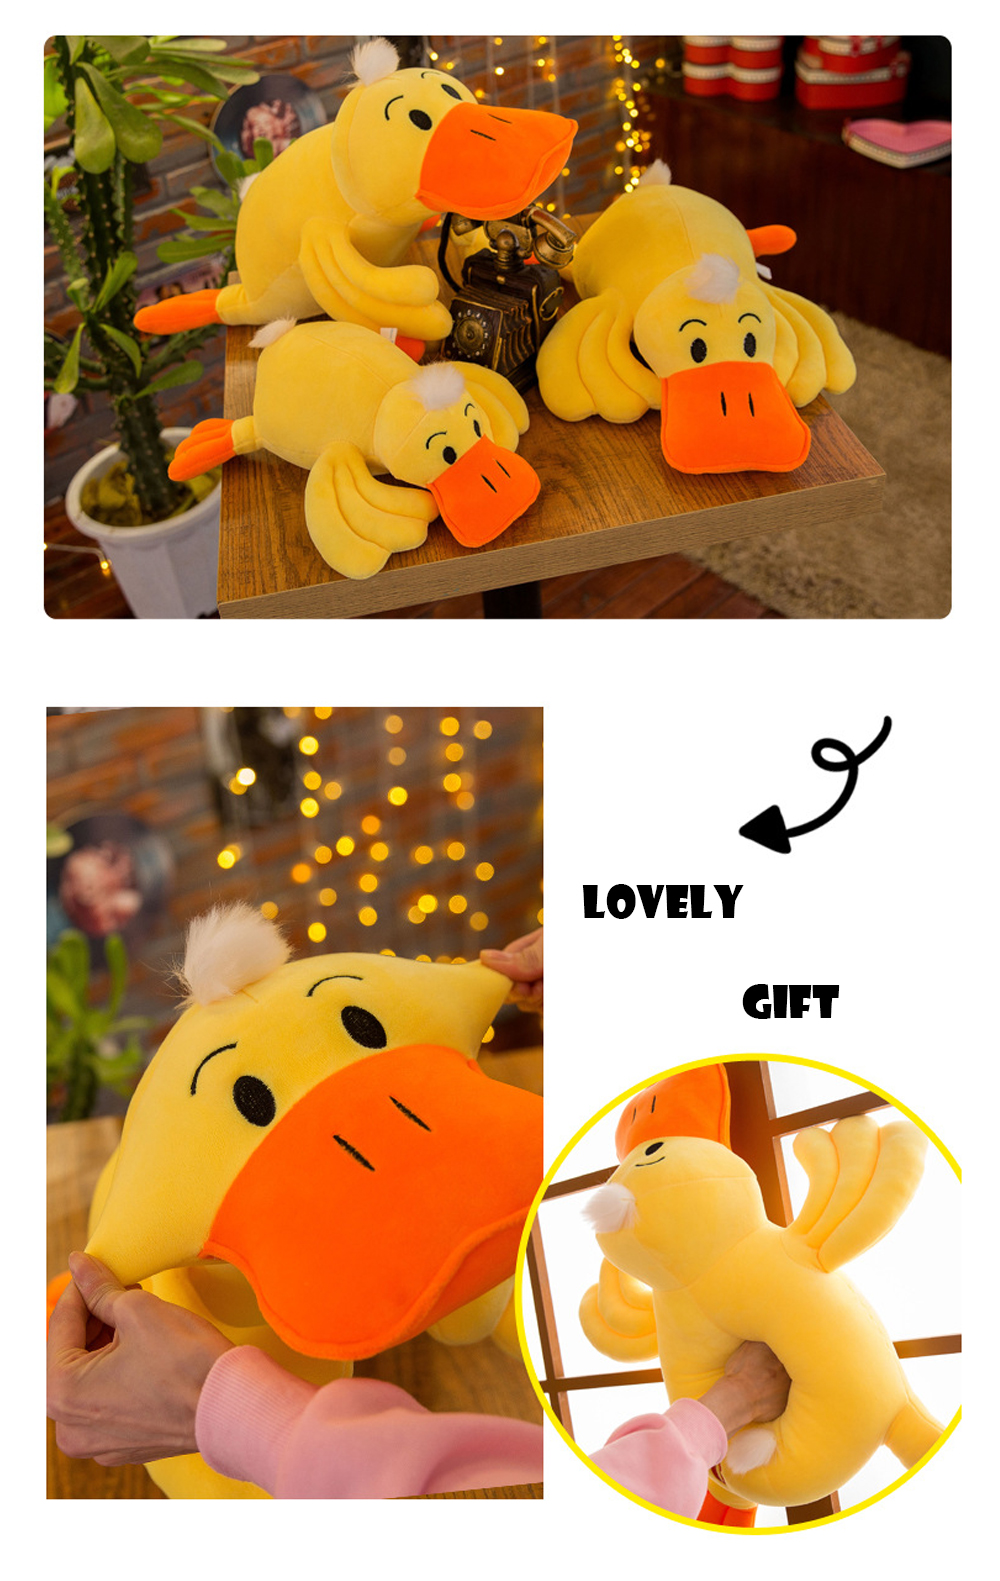 Yellow Duck Plush Toy, Grab Doll Claw Toy, Cute Duck Doll Festival Activities Gift 6